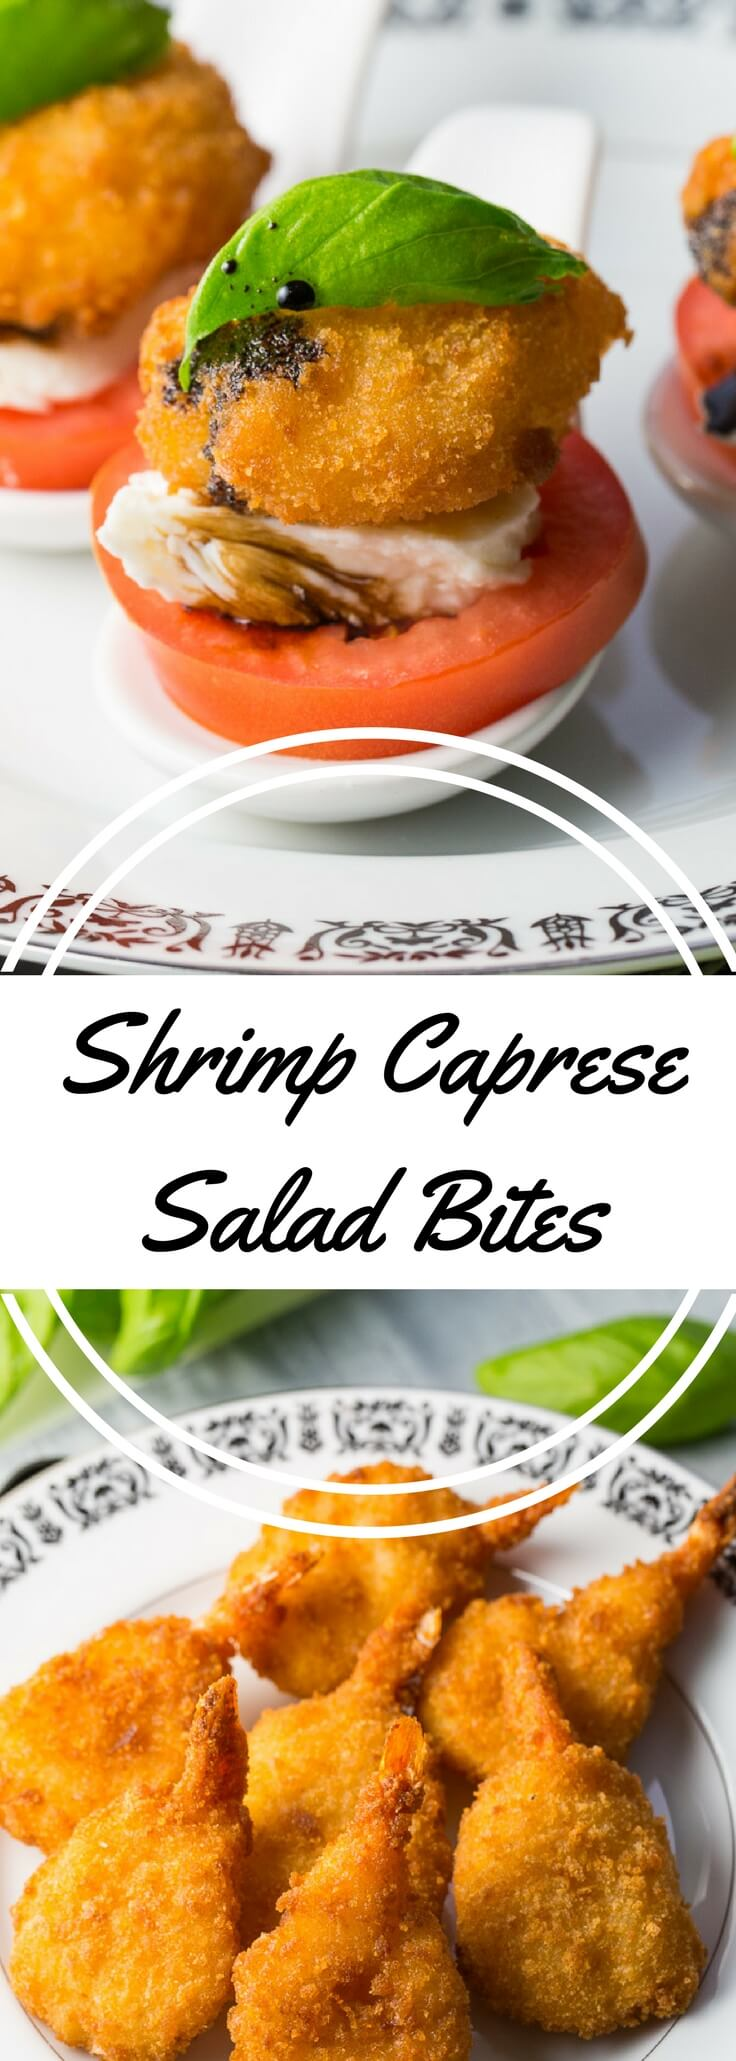 Crunchy Shrimp Caprese Salad Bites are made with butterfly shrimp, mozzarella, fresh tomatoes, basil, balsamic vinegar, and olive oil.